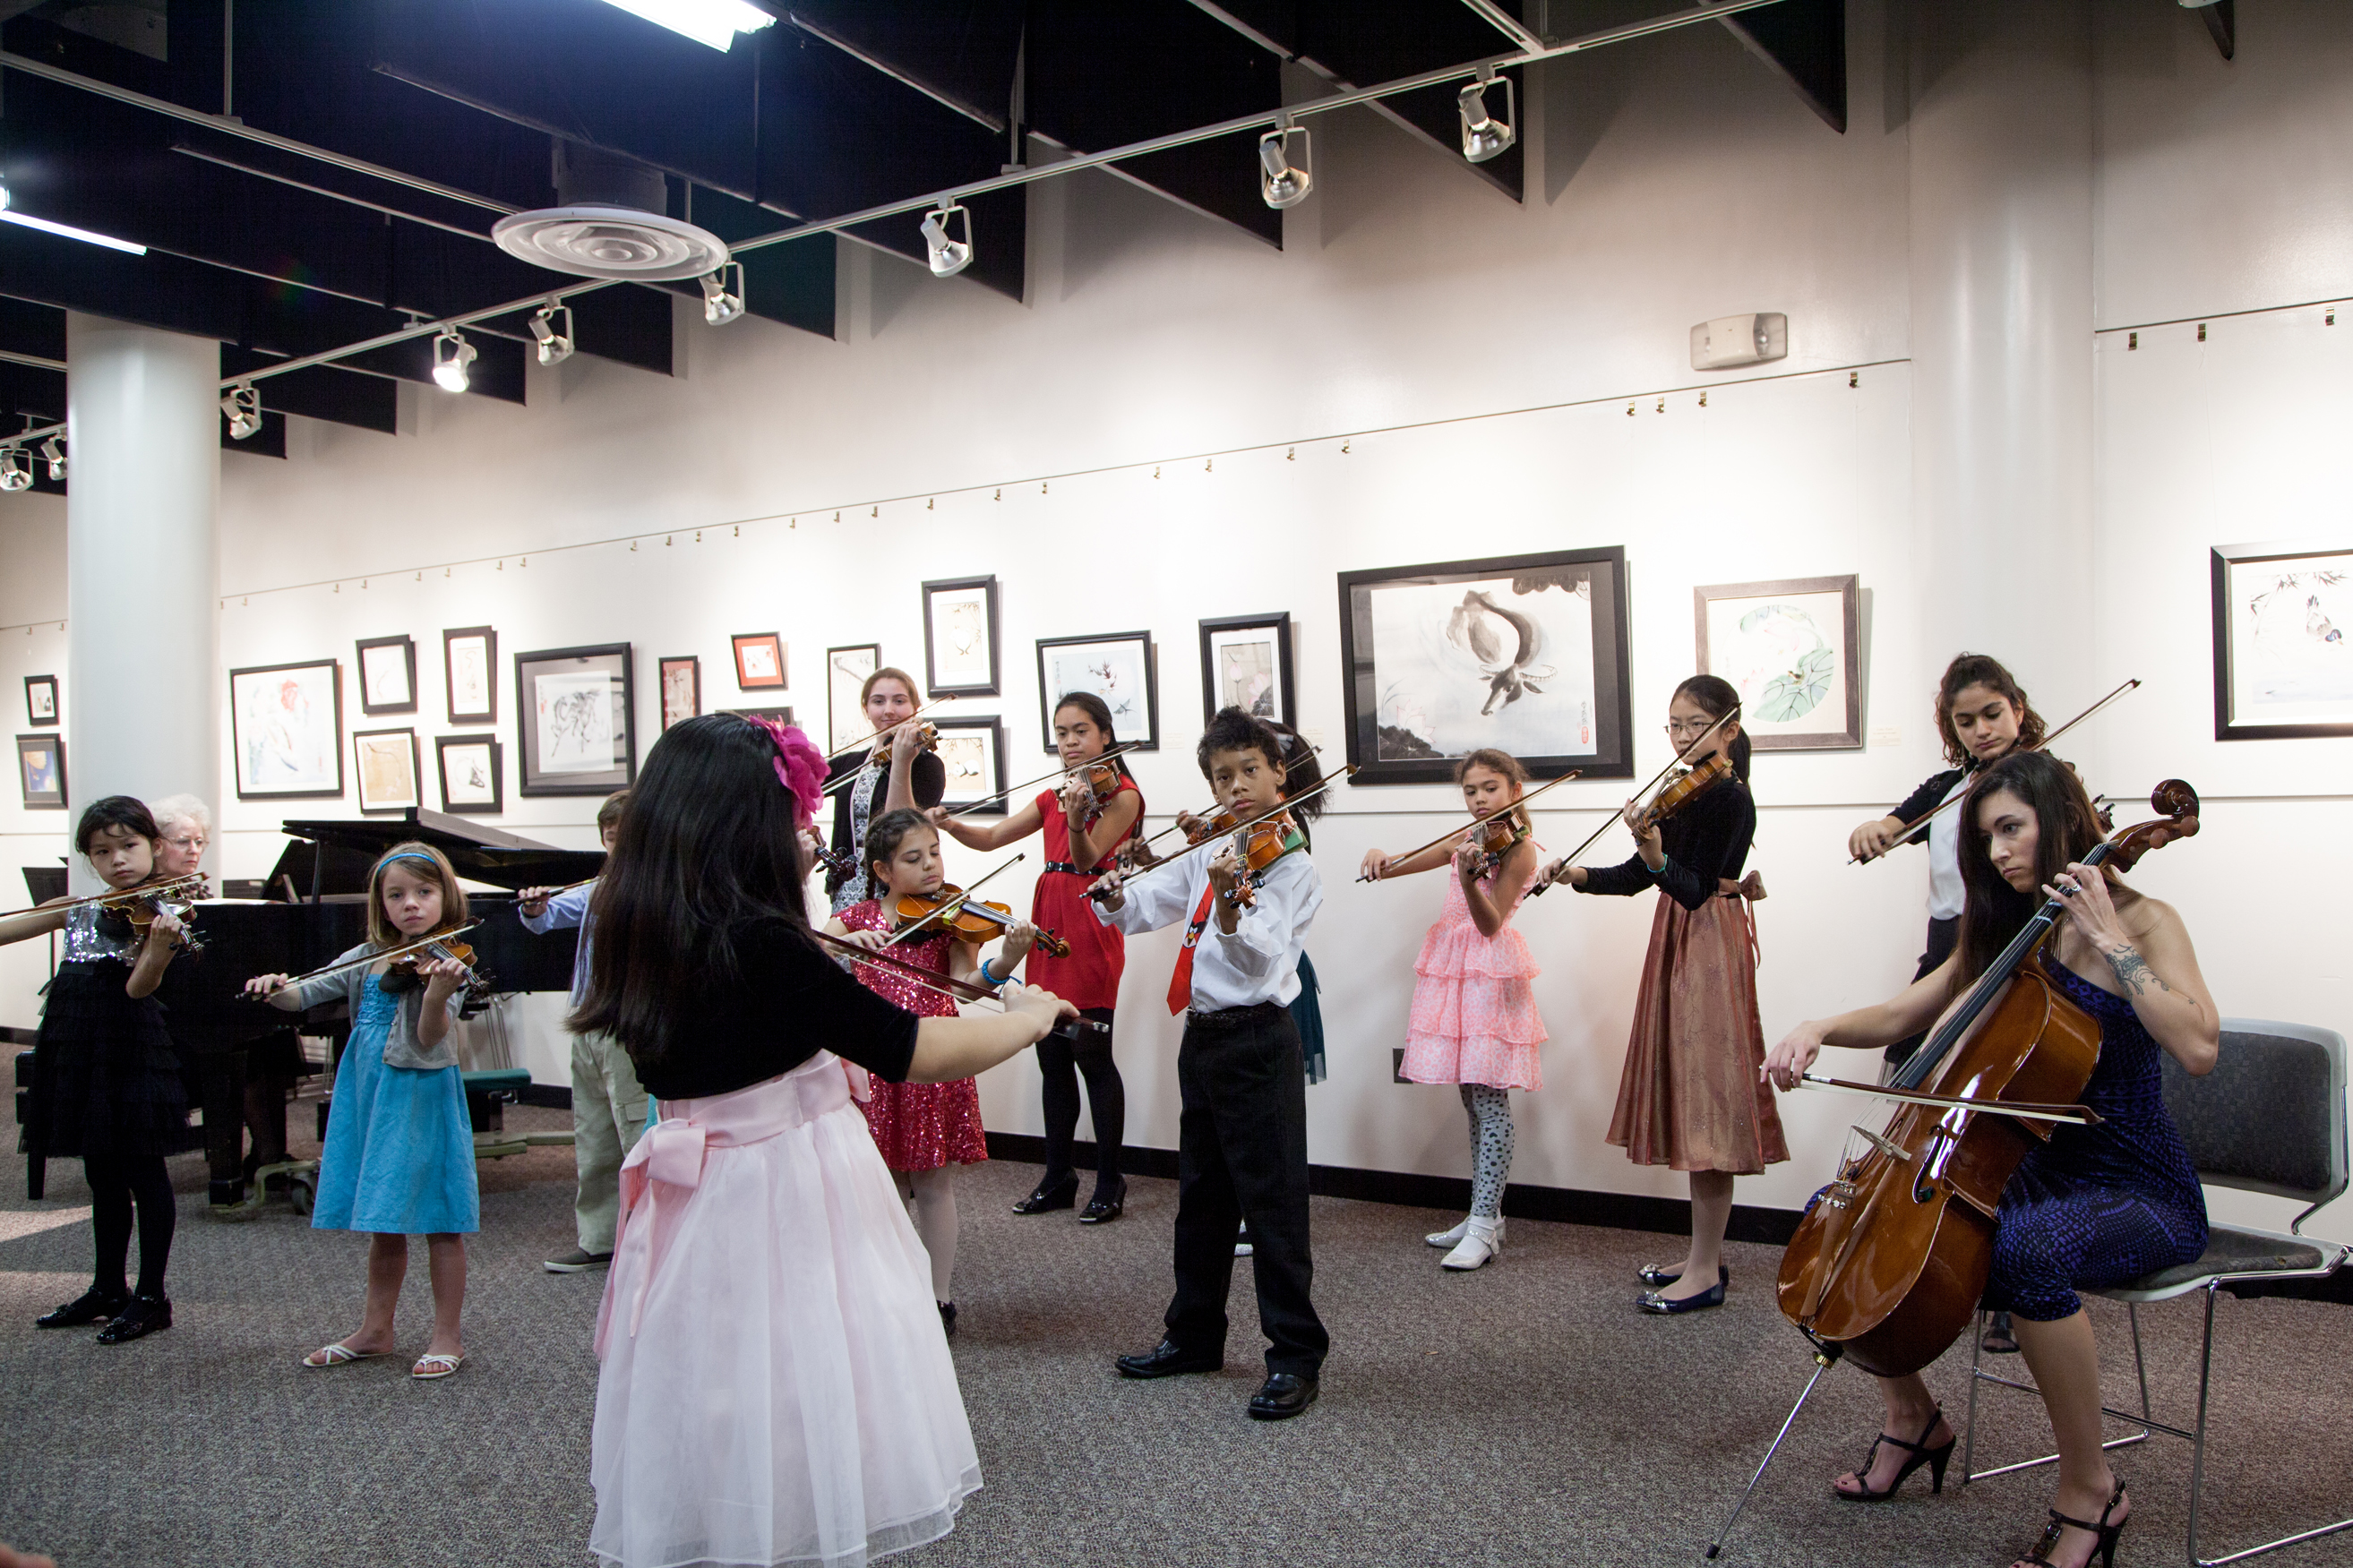 Students playing their violins together